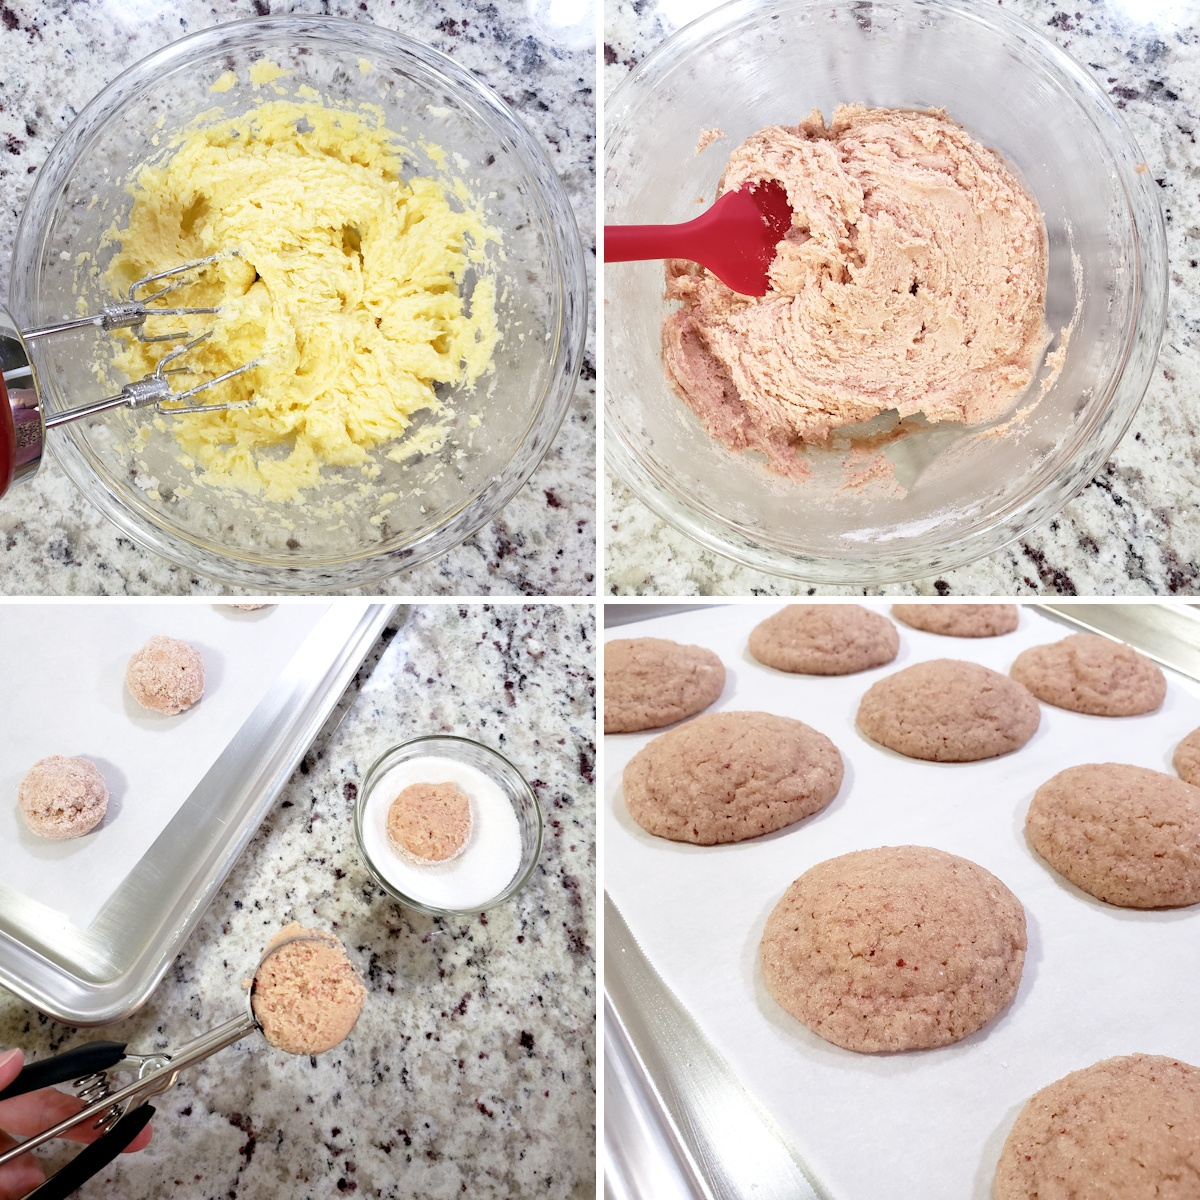 Mixing and baking strawberry cookies.